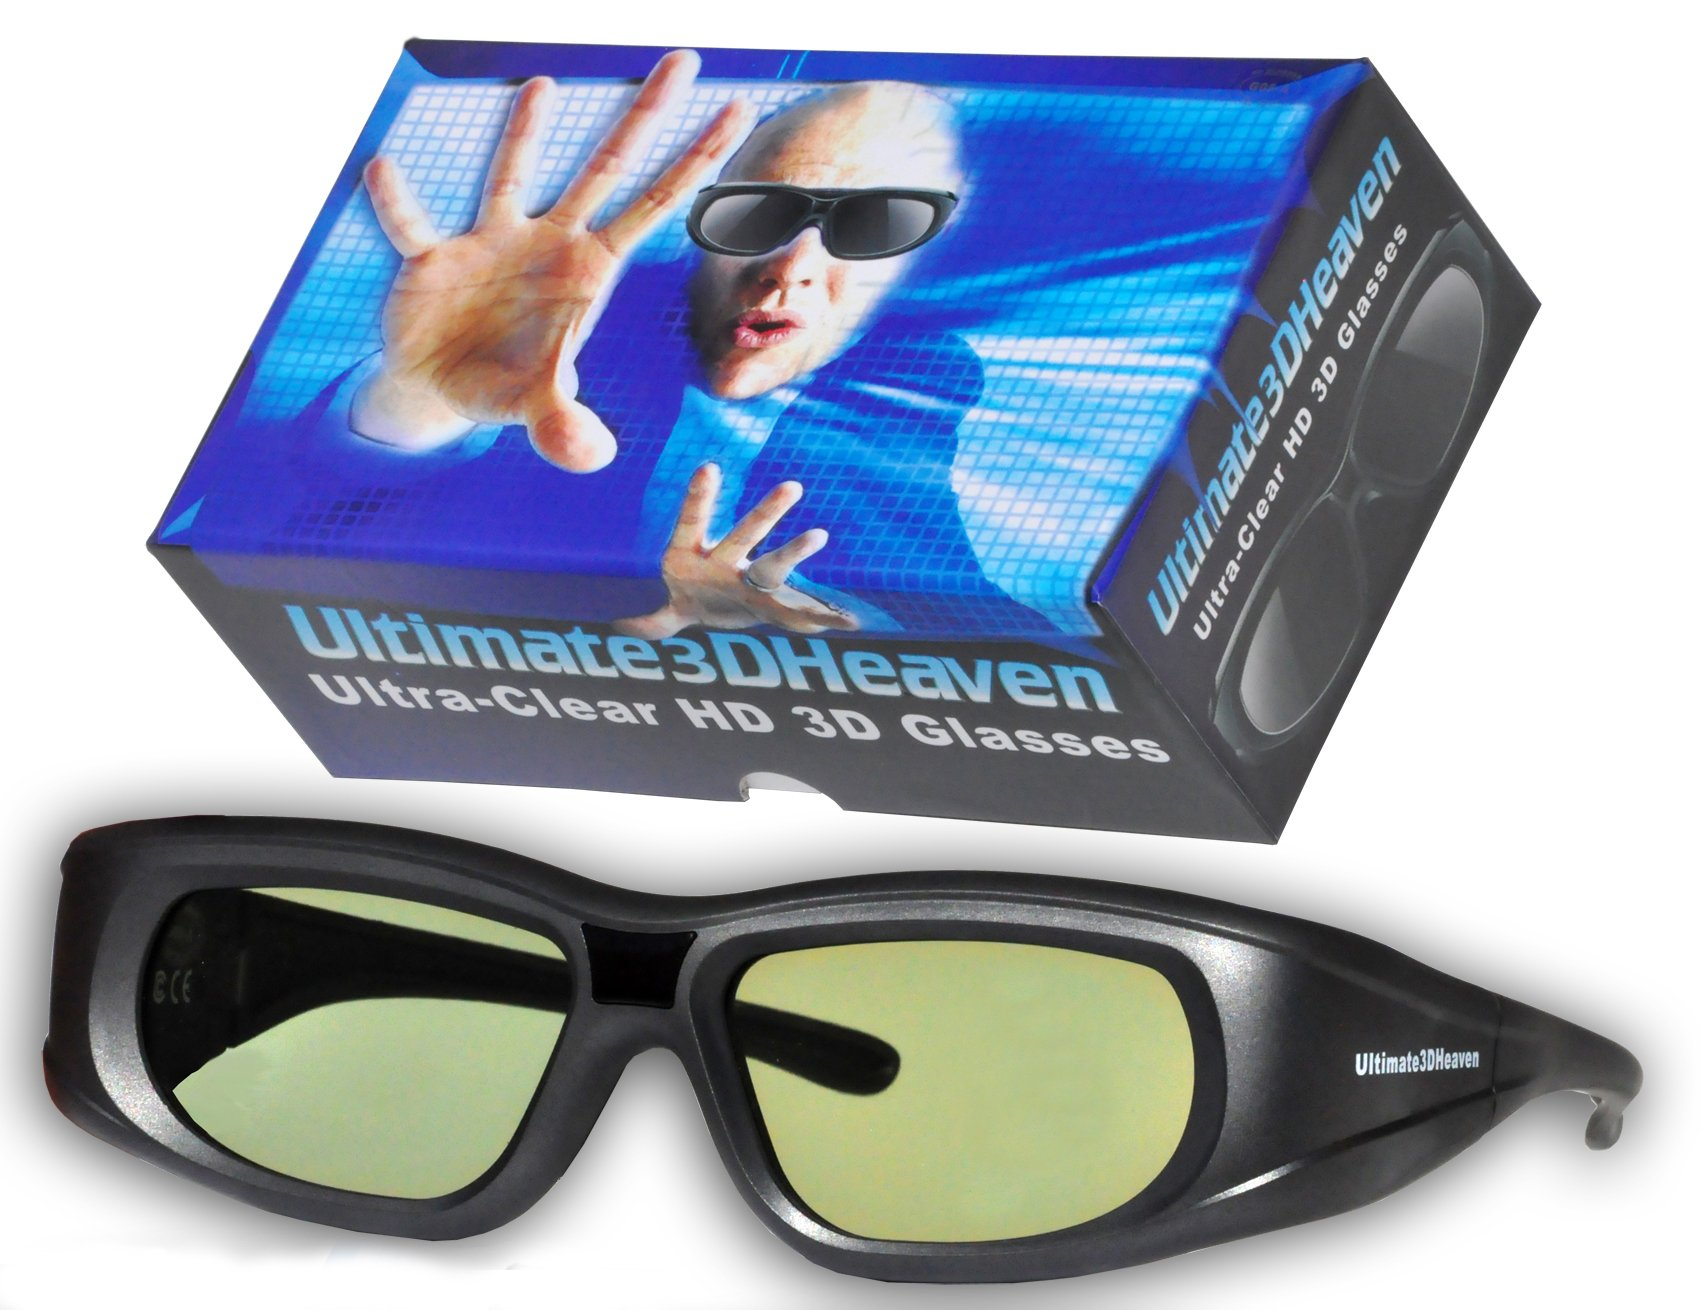 2 Ultra-Clear 3D Glasses for Panasonic 3D Televisions Rechargeable 2011 & Prior (IR) by 3DHeaven